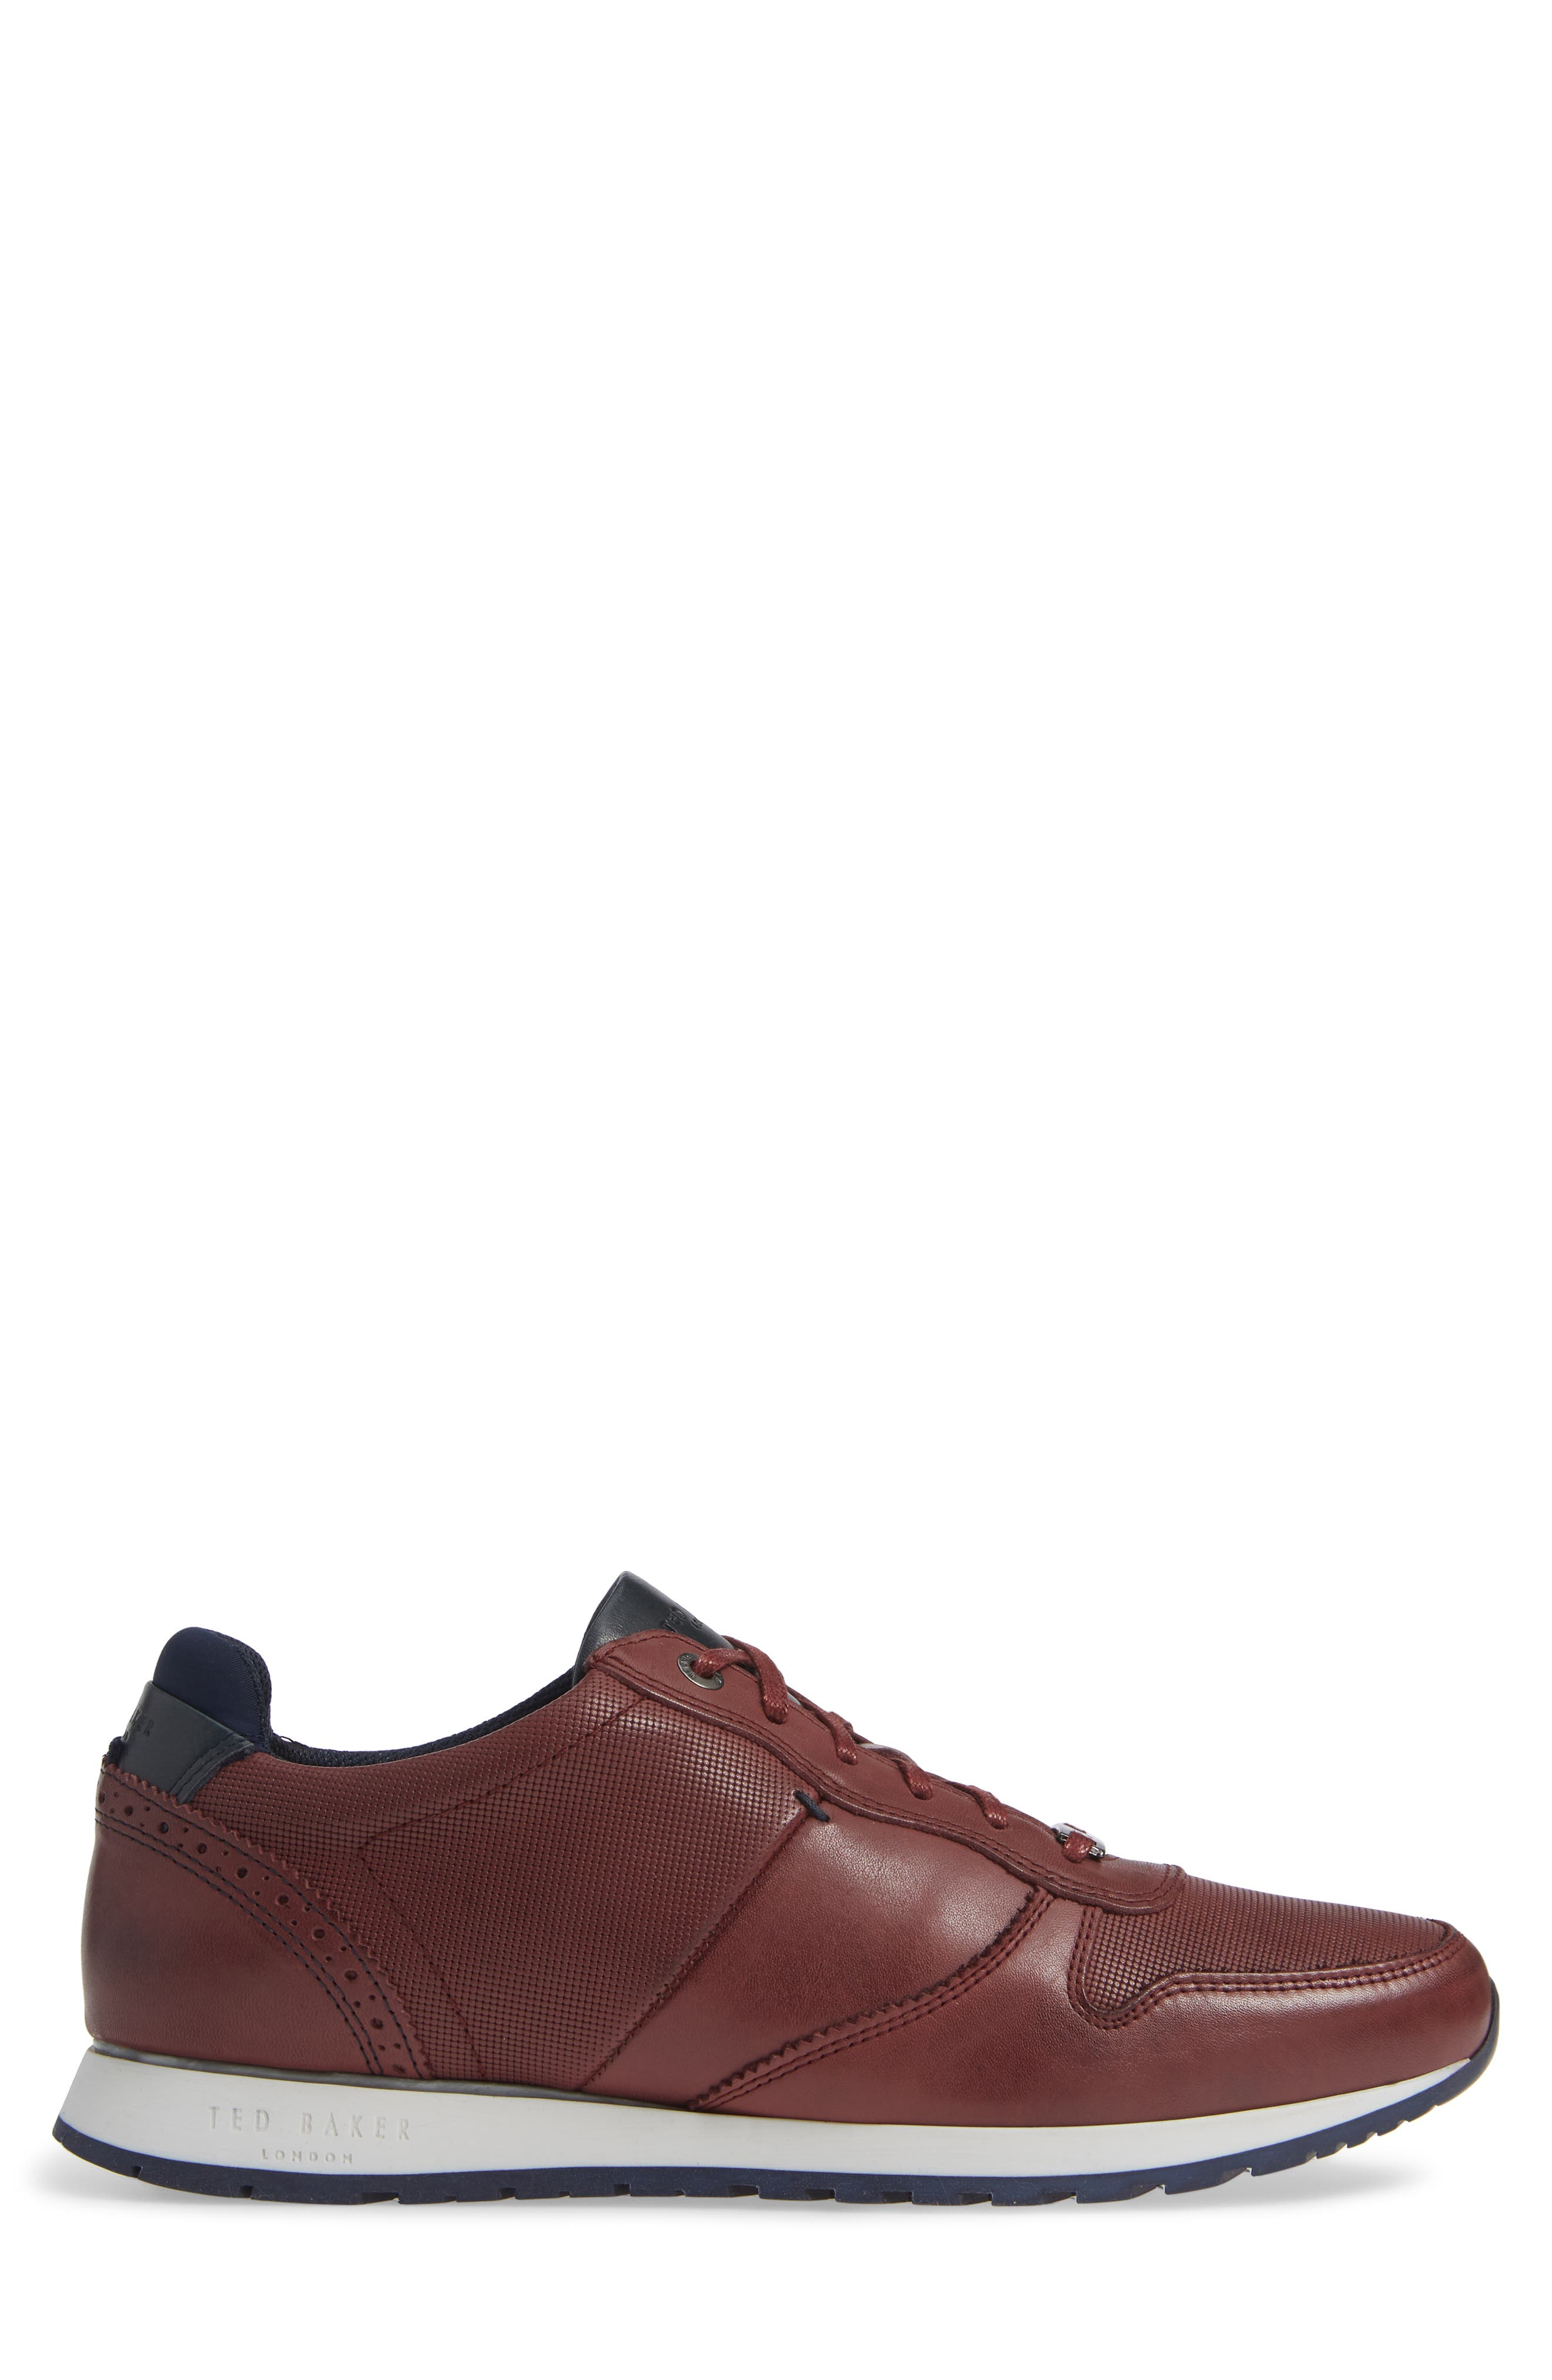 Shindl Sneaker,                             Alternate thumbnail 2, color,                             Dark Red Leather